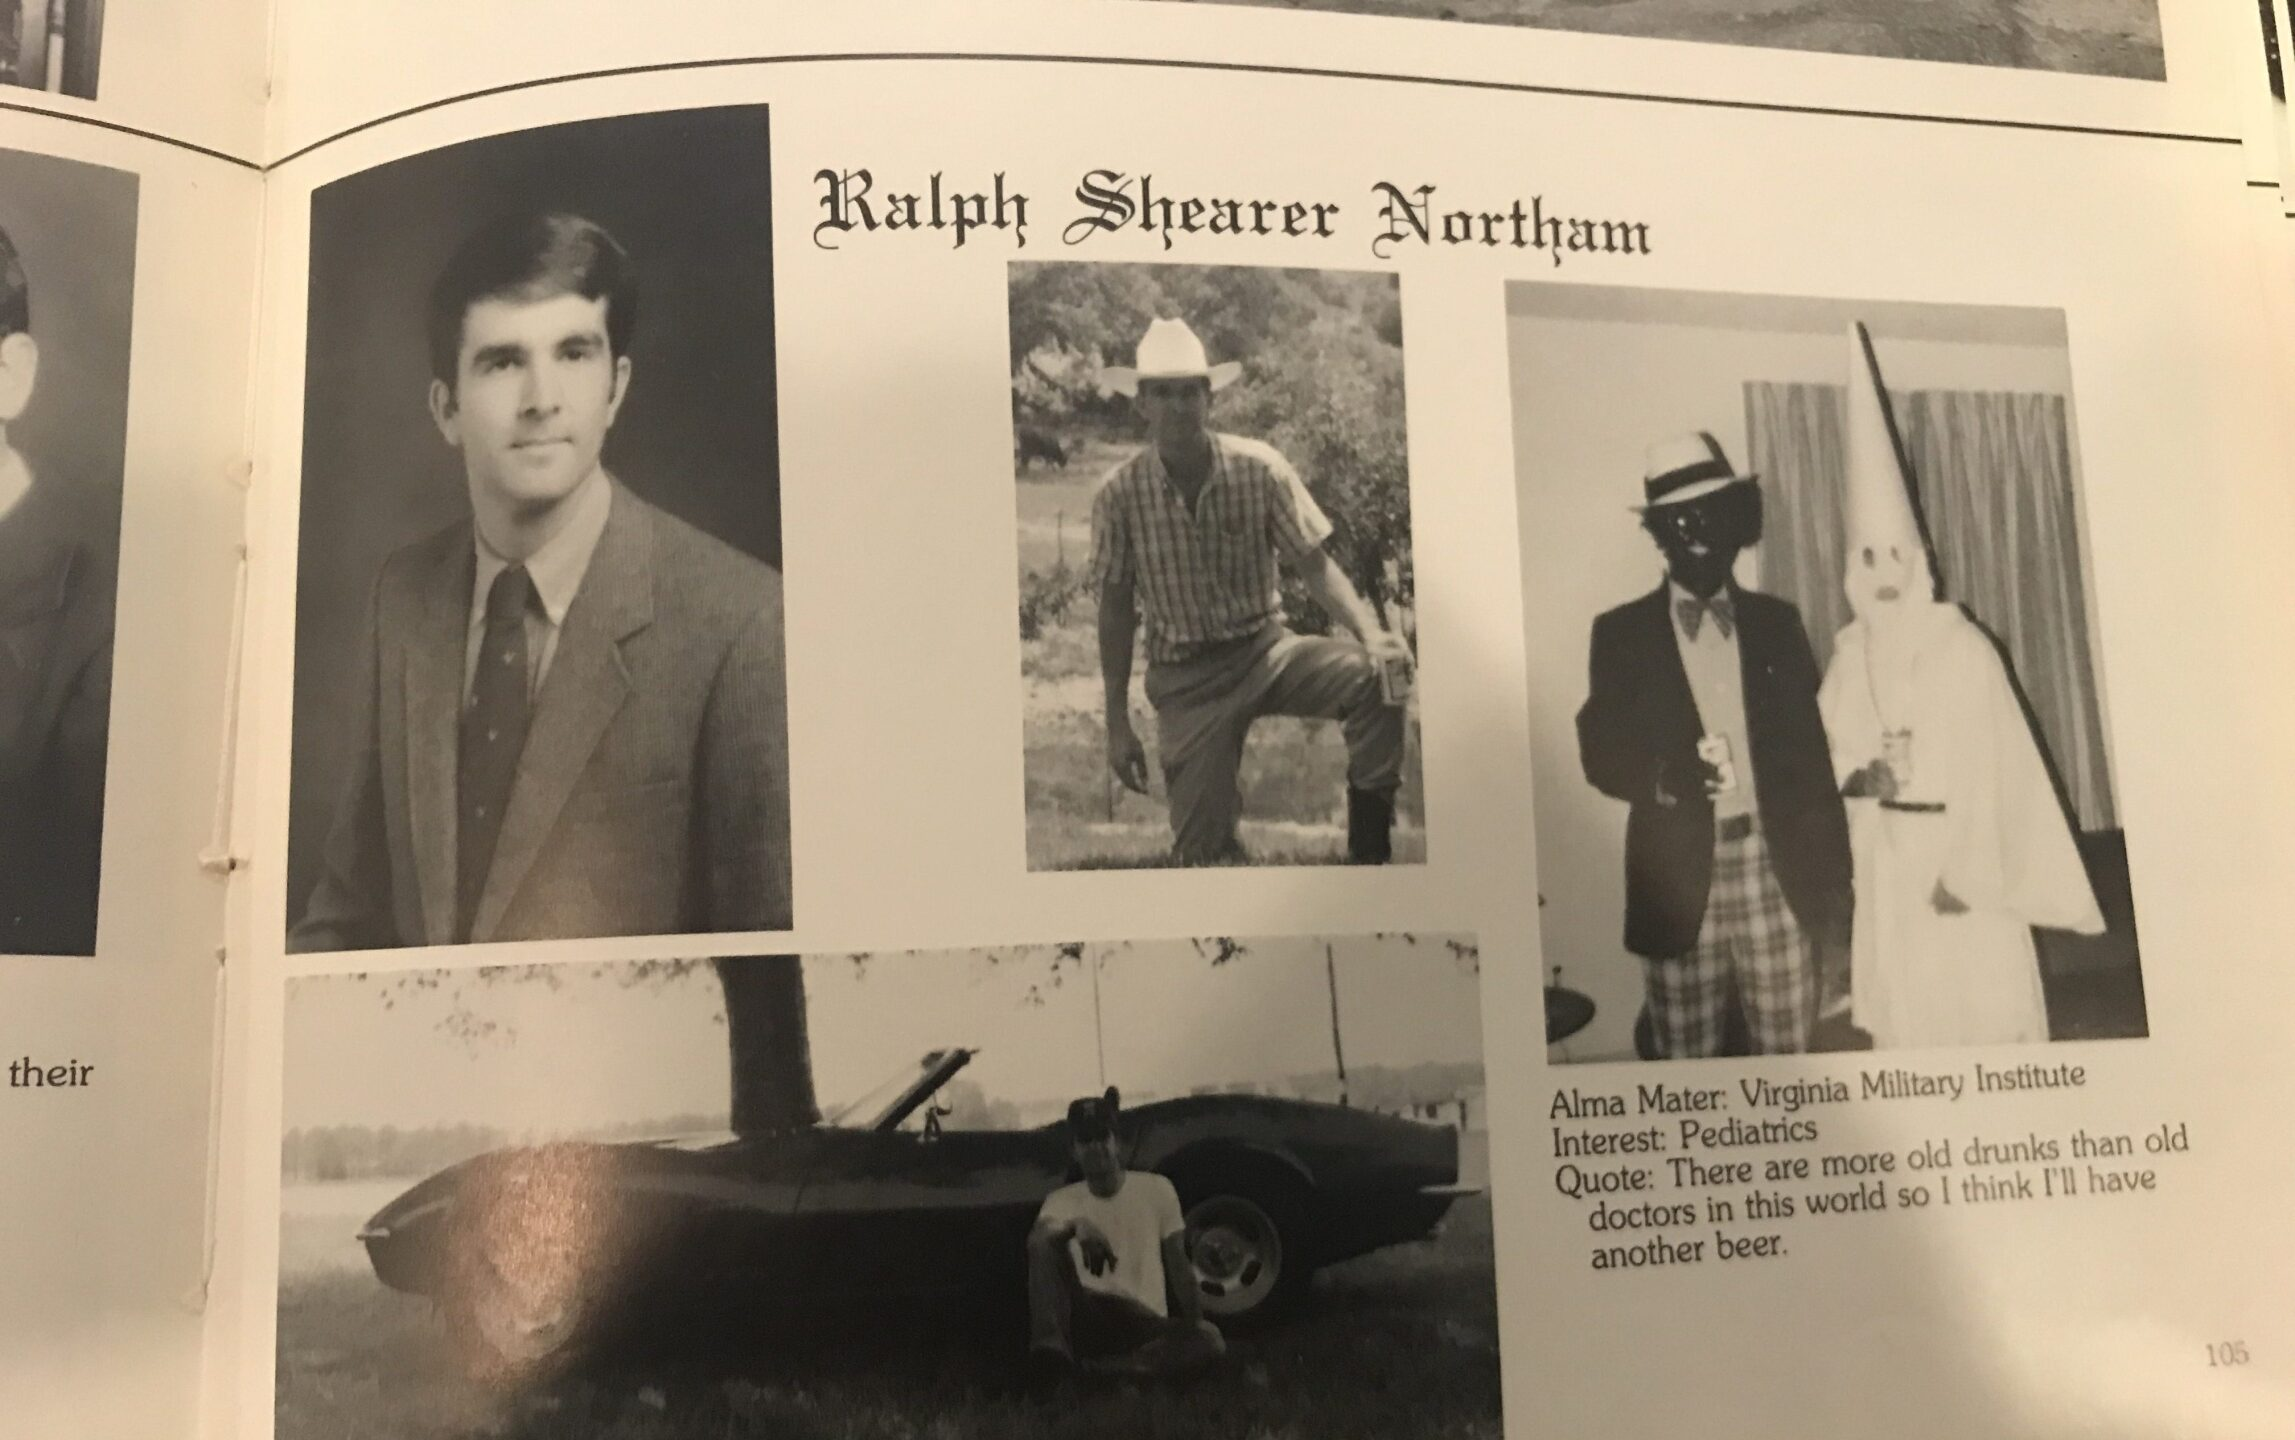 Photos: Watch: Report inconclusive on whether Gov. Northam is in racist yearbookphoto